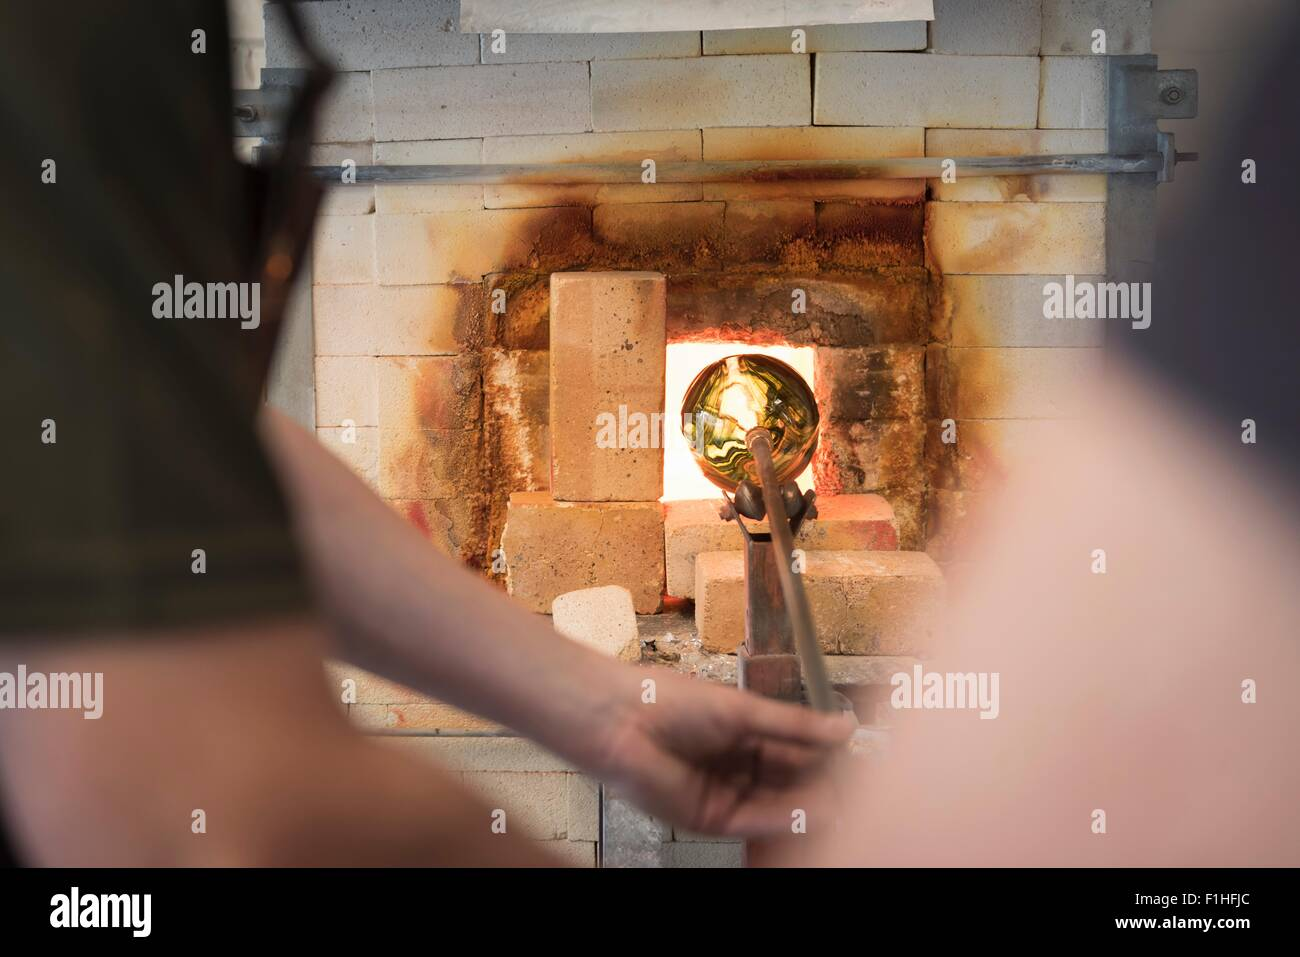 Glassblower heating formed glass in furnace - Stock Image